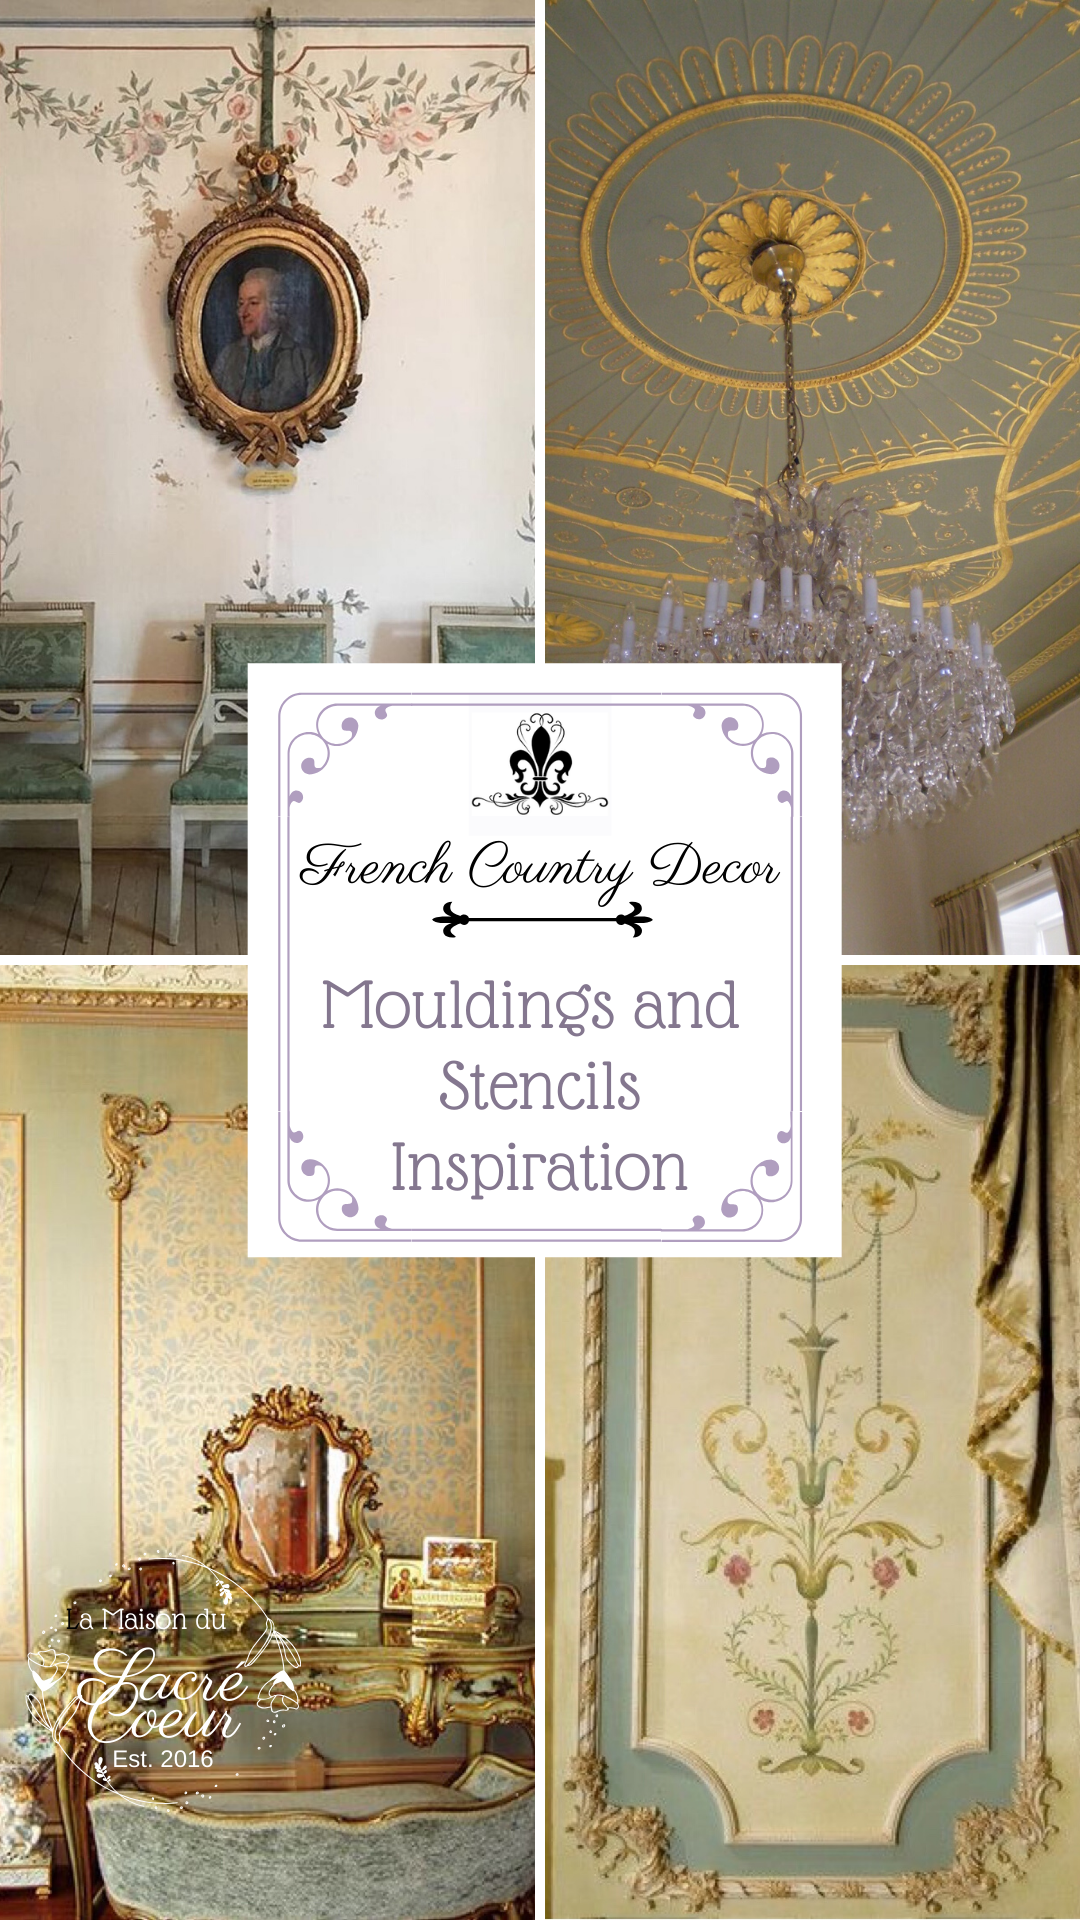 Mouldings and Stencils Inspiration